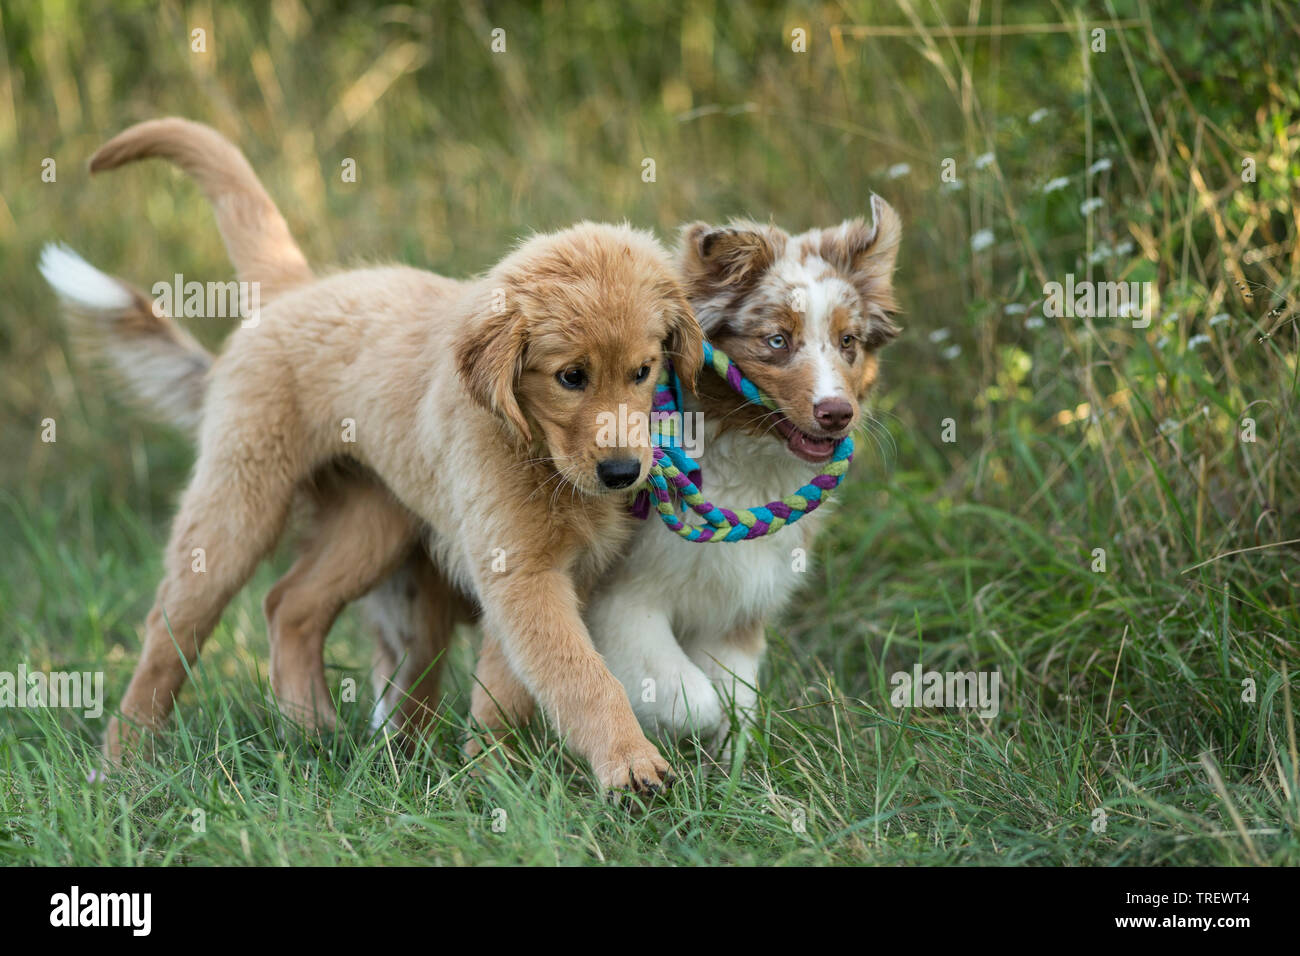 Australian Shepherd puppy and Golden Retriever puppy playing with multicoloured rope. Germany - Stock Image